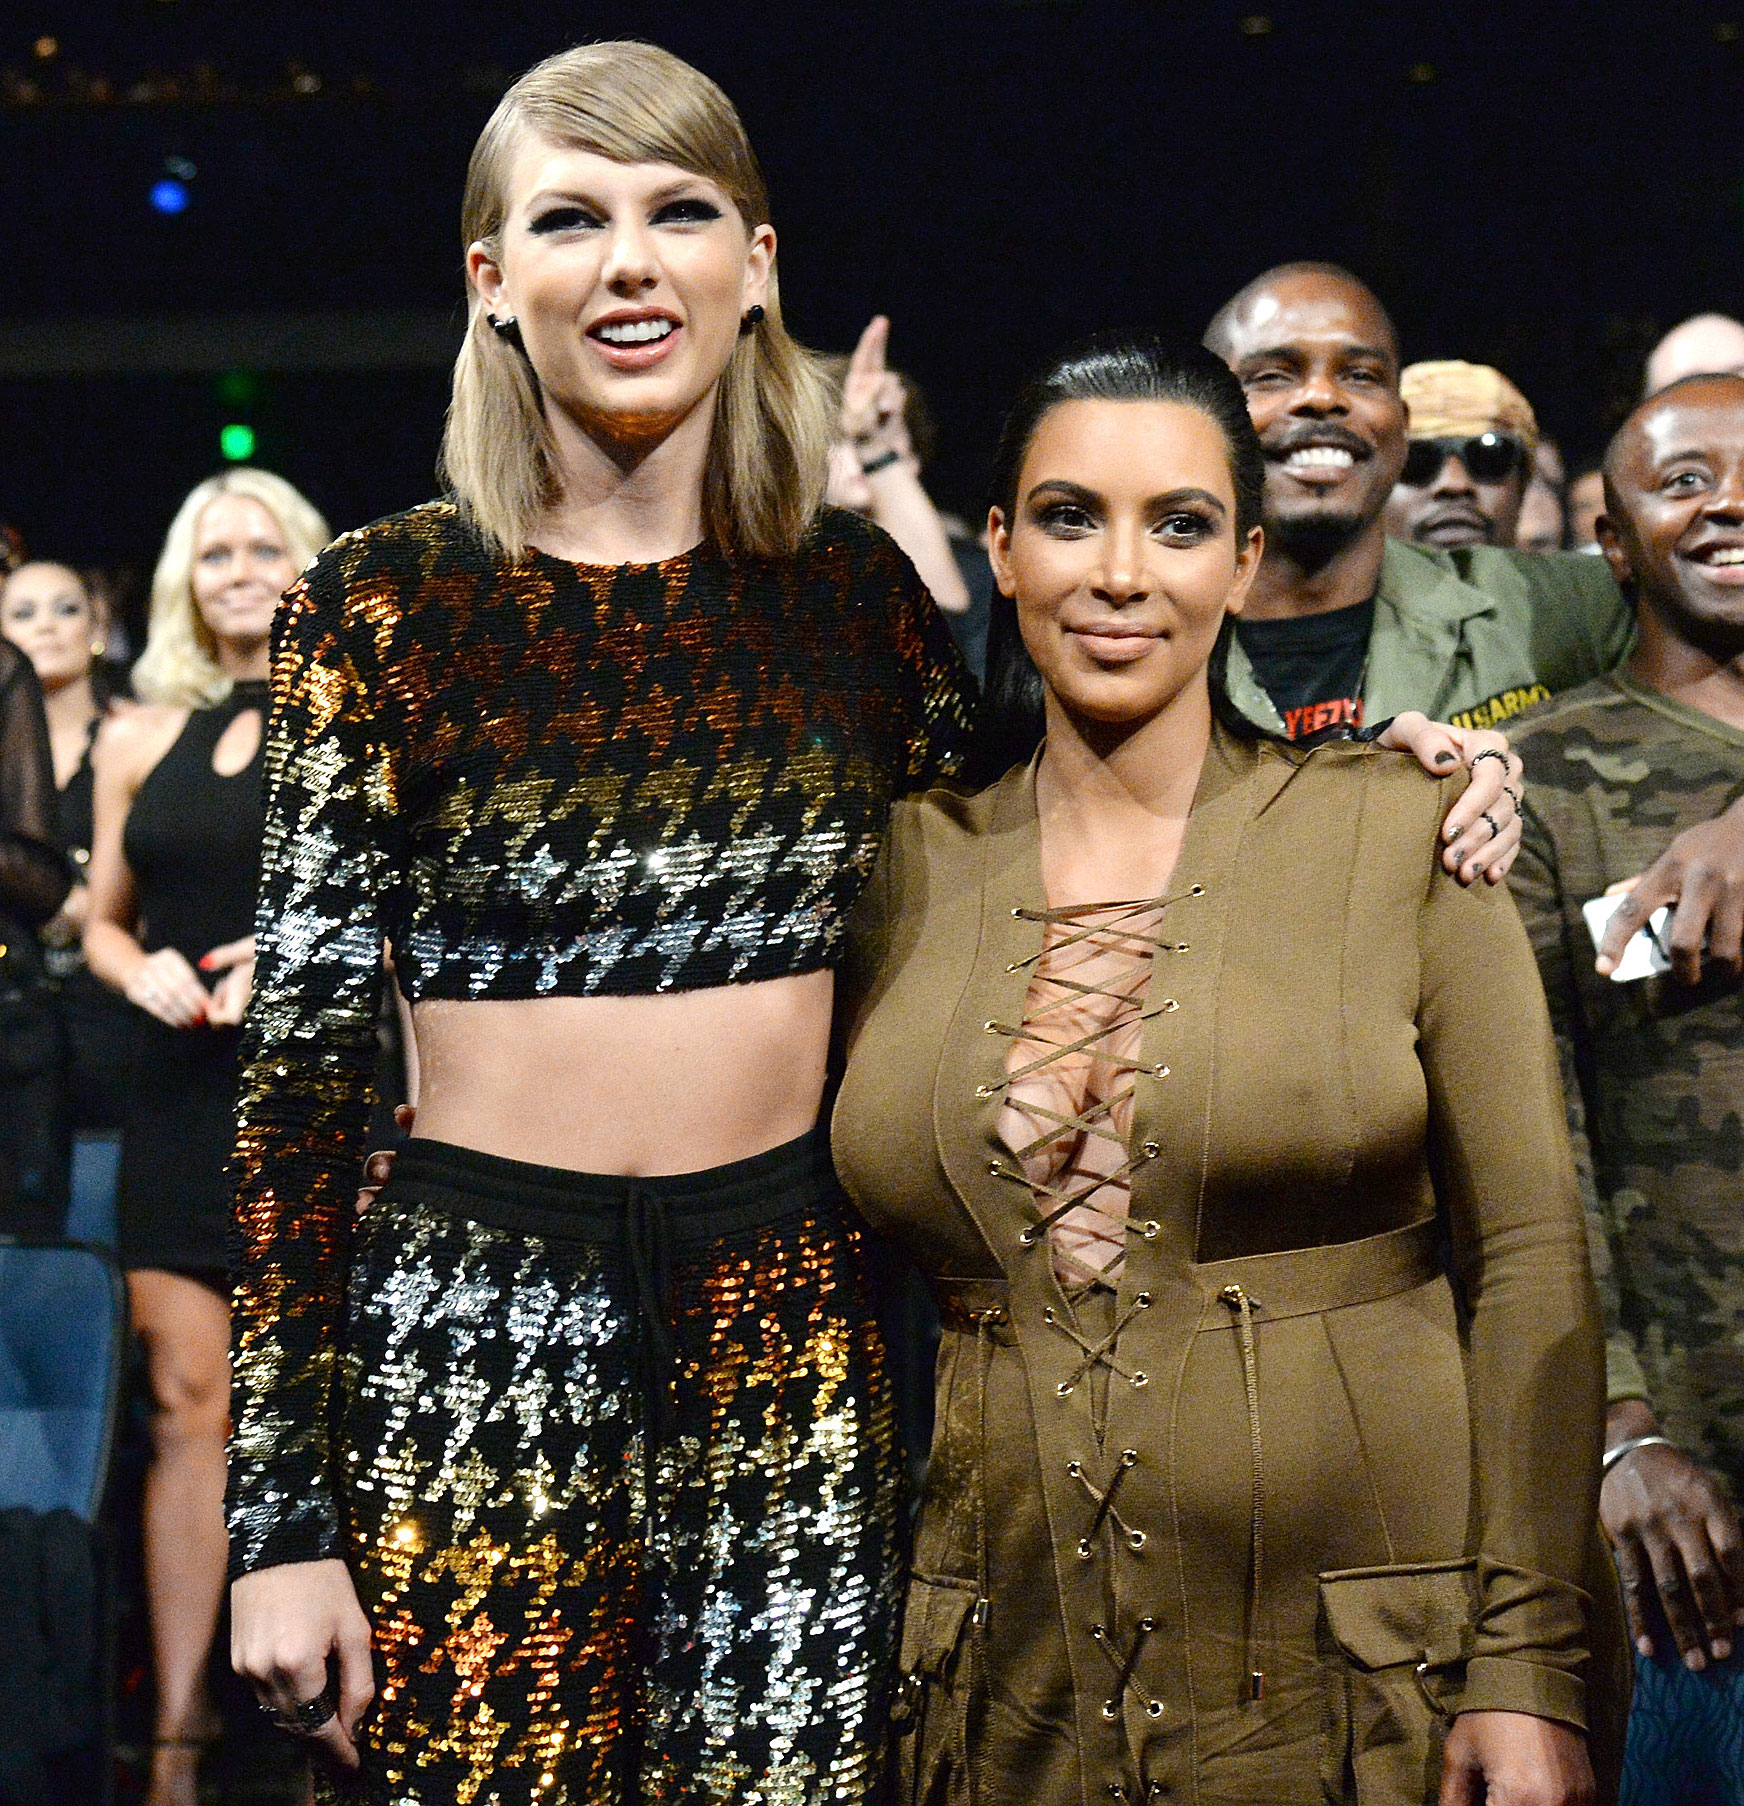 Taylor Swift ELLE Kim Kardashian Feud - Taylor Swift and Kim Kardashian West attend the MTV Video Music Awards at Microsoft Theater on August 30, 2015 in Los Angeles.